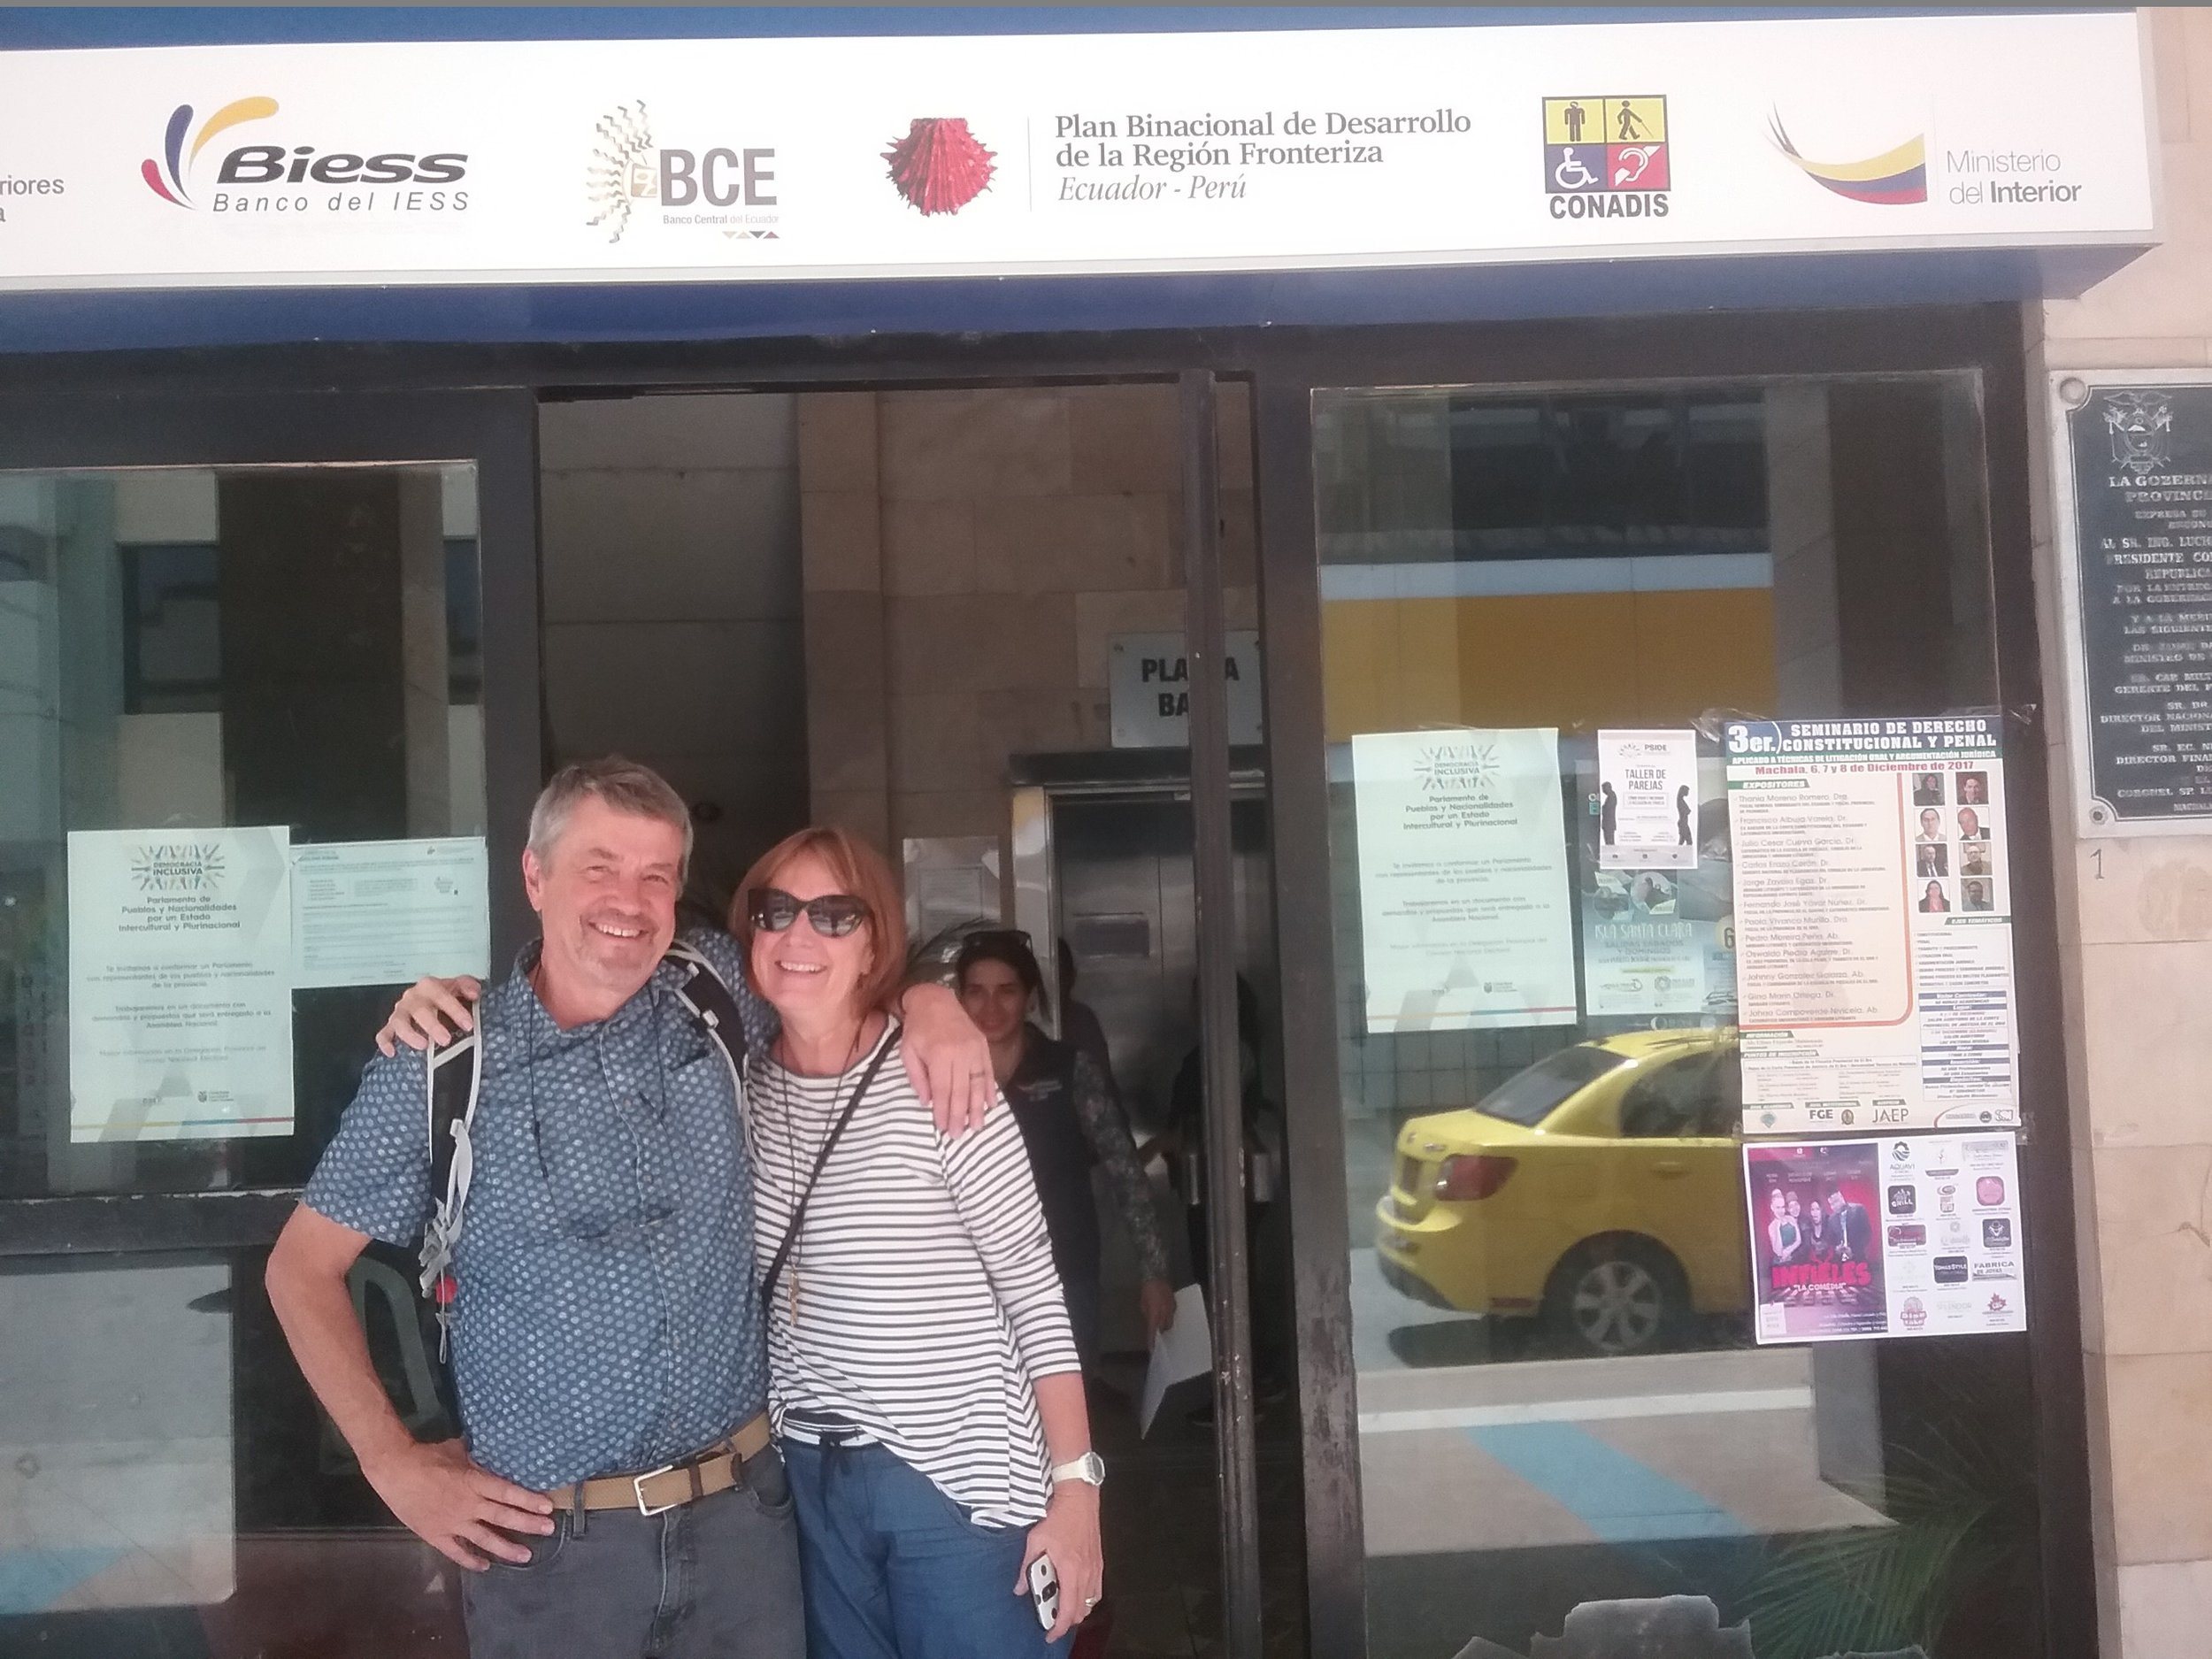 Jeff and Marcia Van Dyke out in Machala